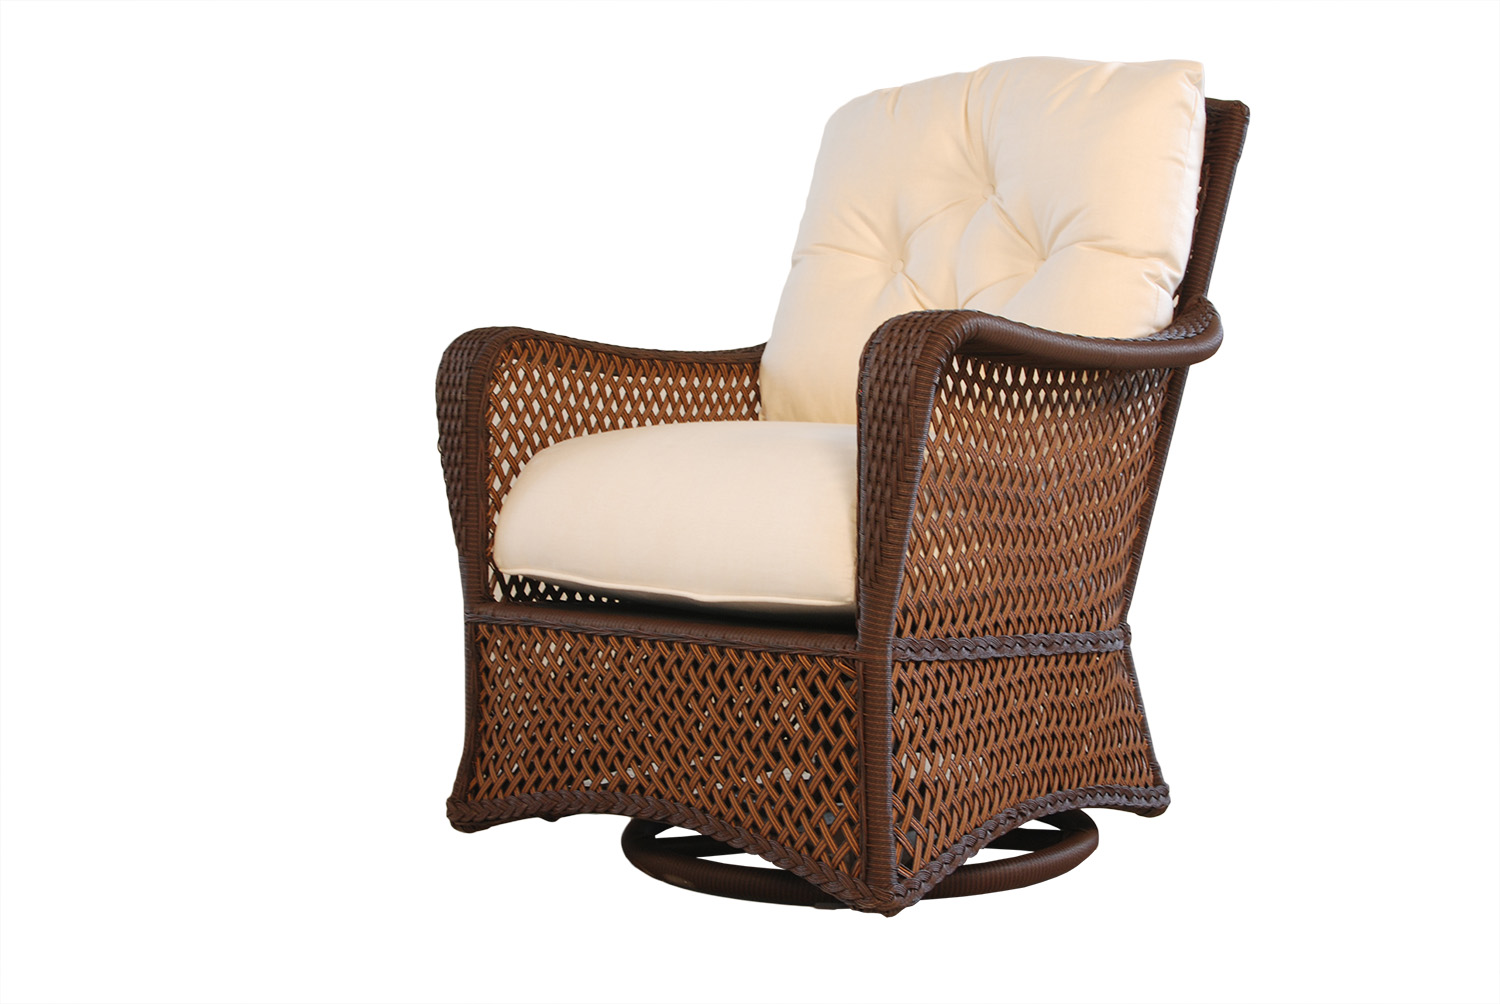 Outdoor Wicker Furniture Grand Traverse Group By Lloyd